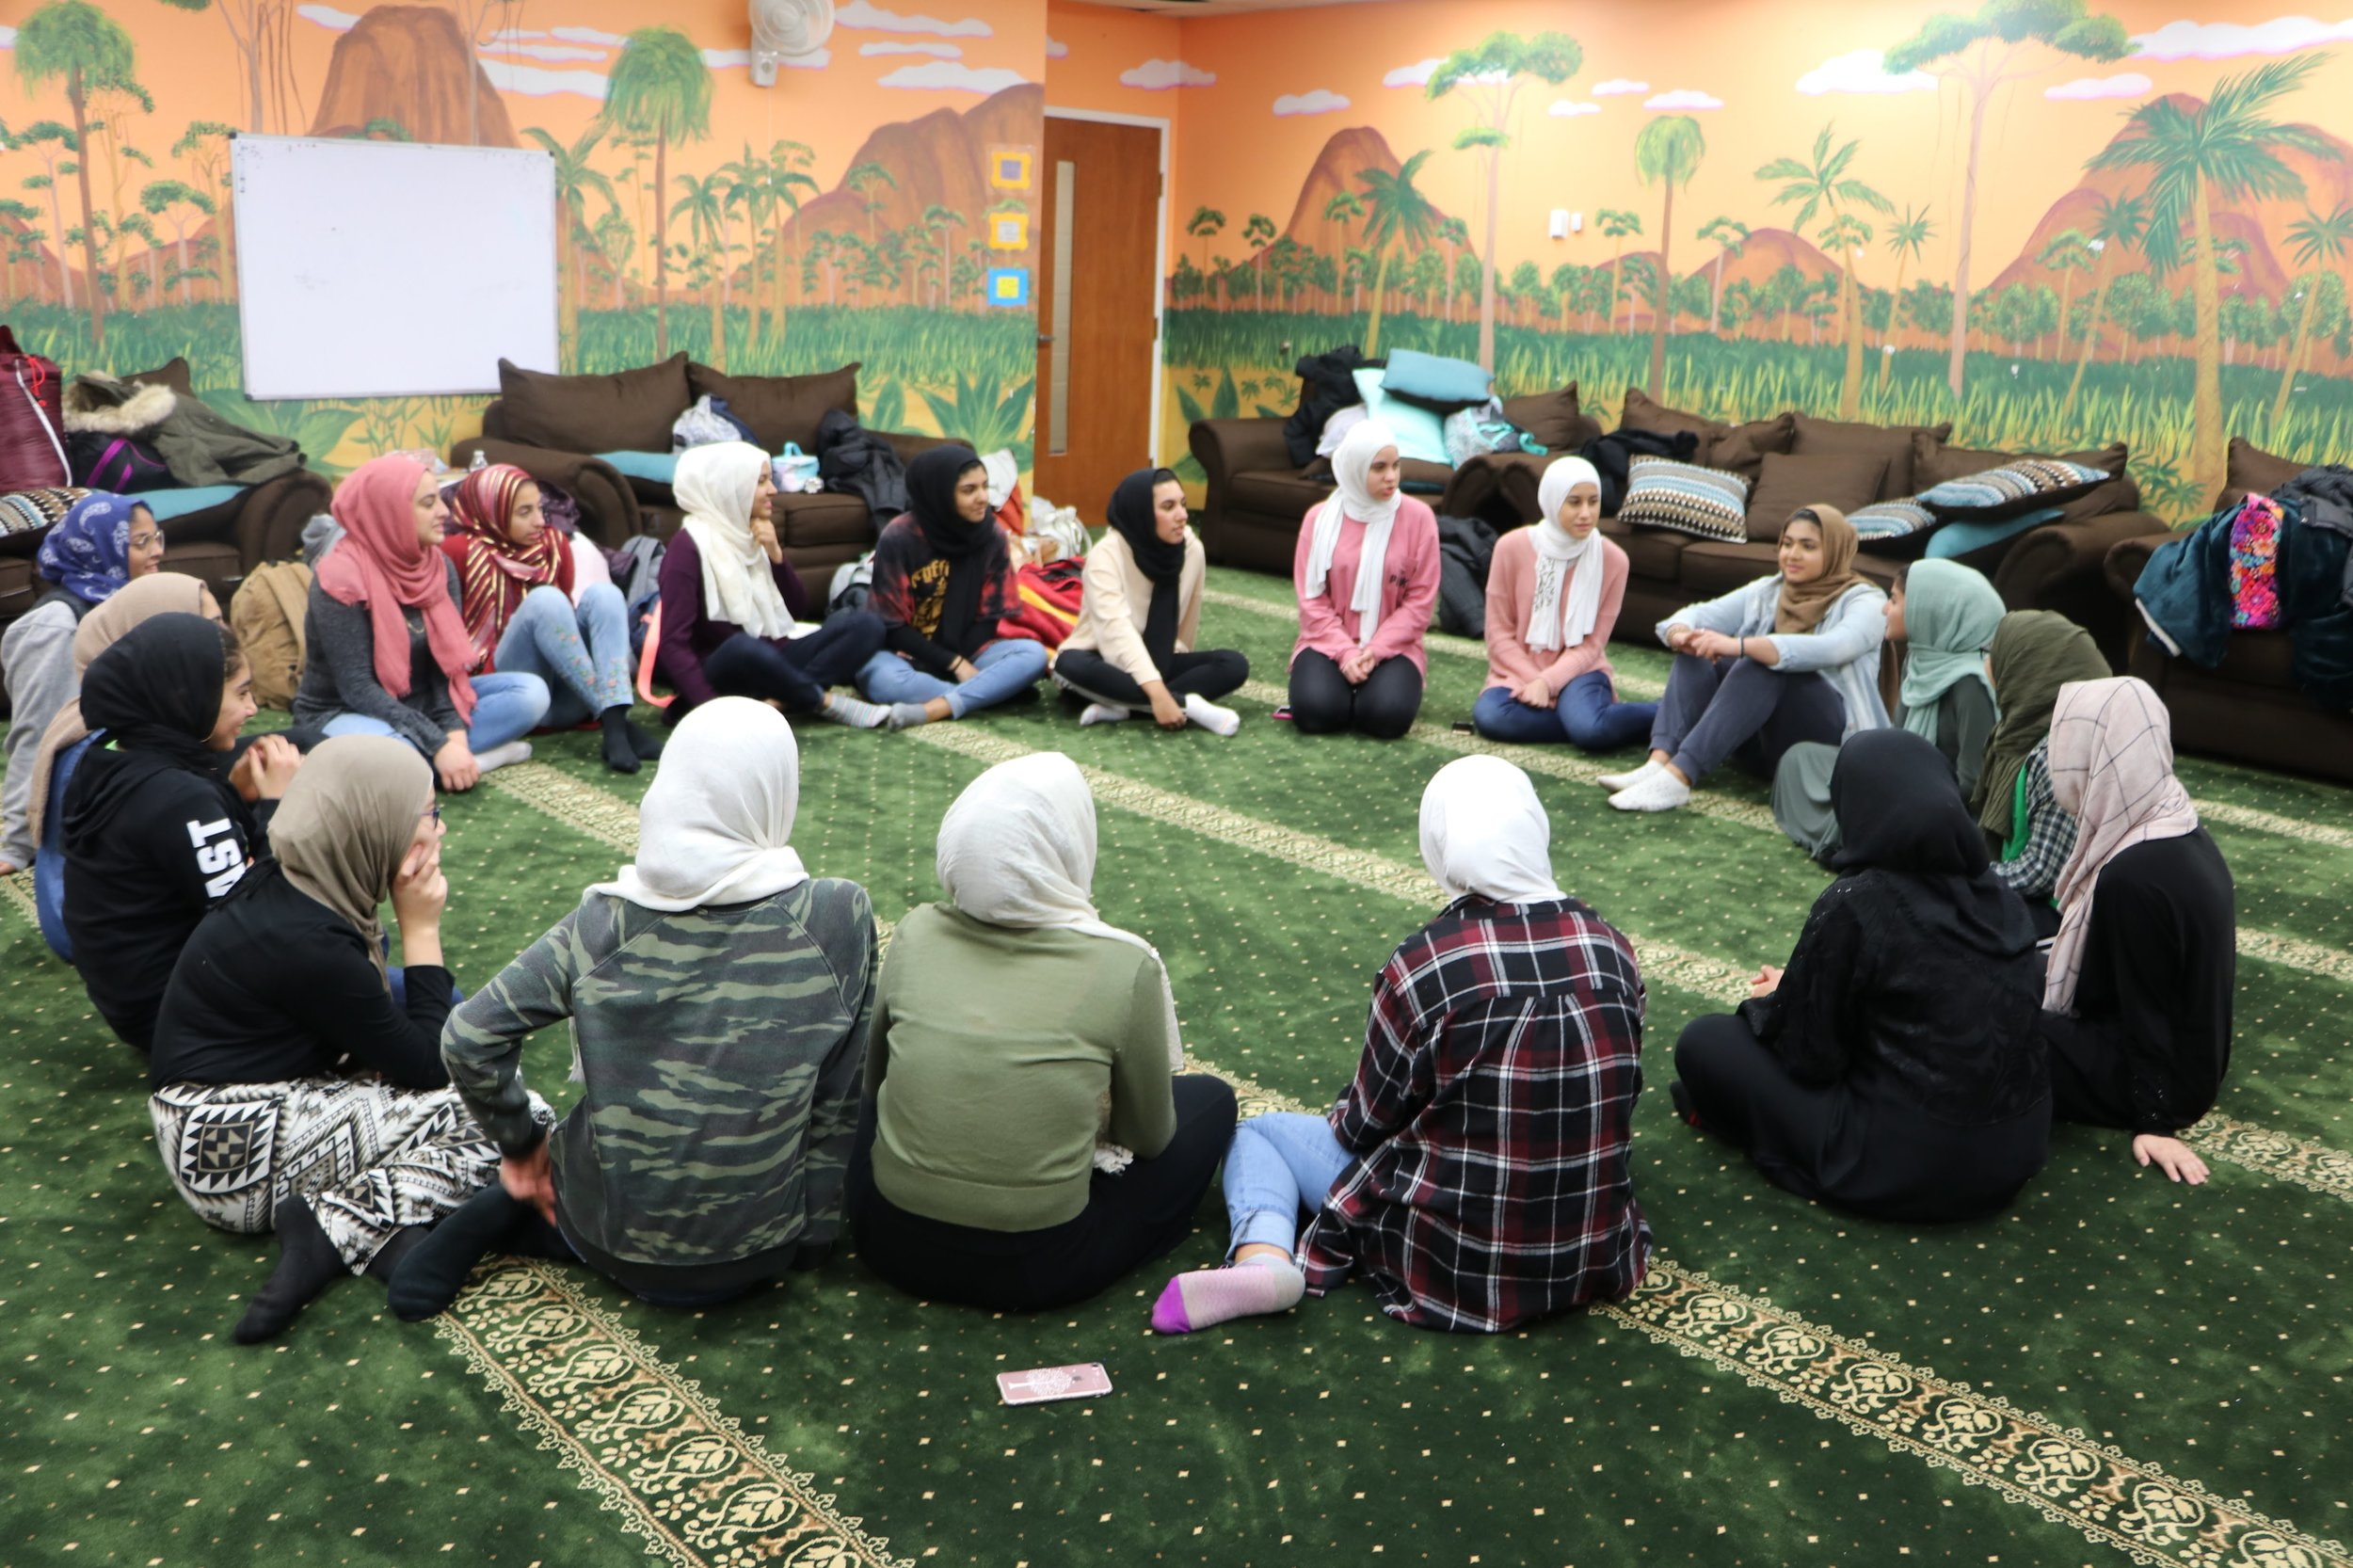 Campers get to know one another through ice breaker activities on the first night of the qiyam.